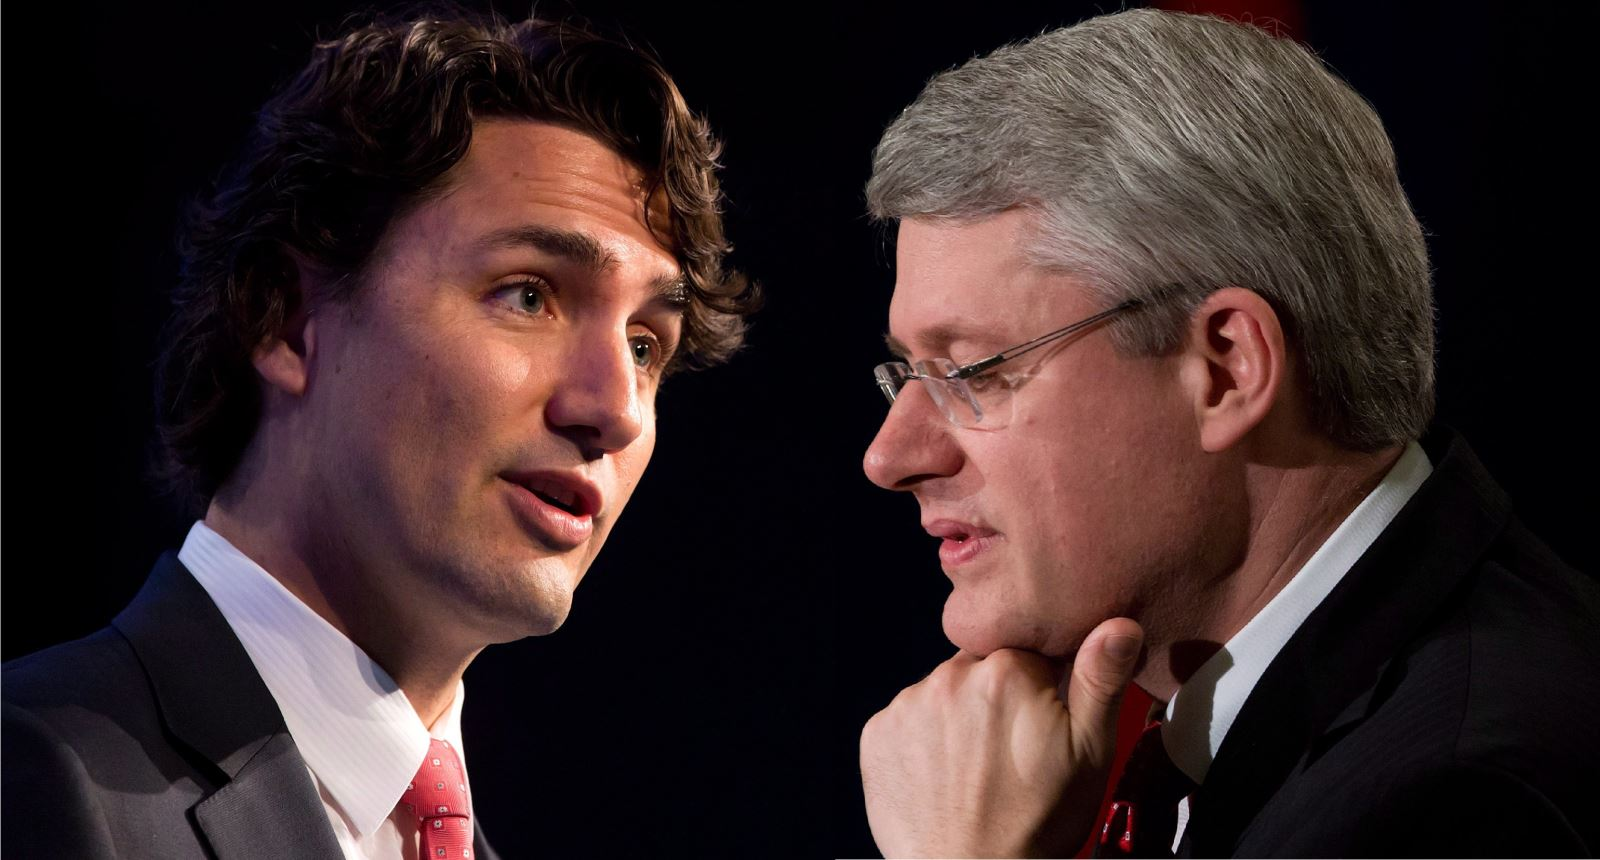 Stephen Harper vs. Justin Trudeau: income-splitting becomes an election issue